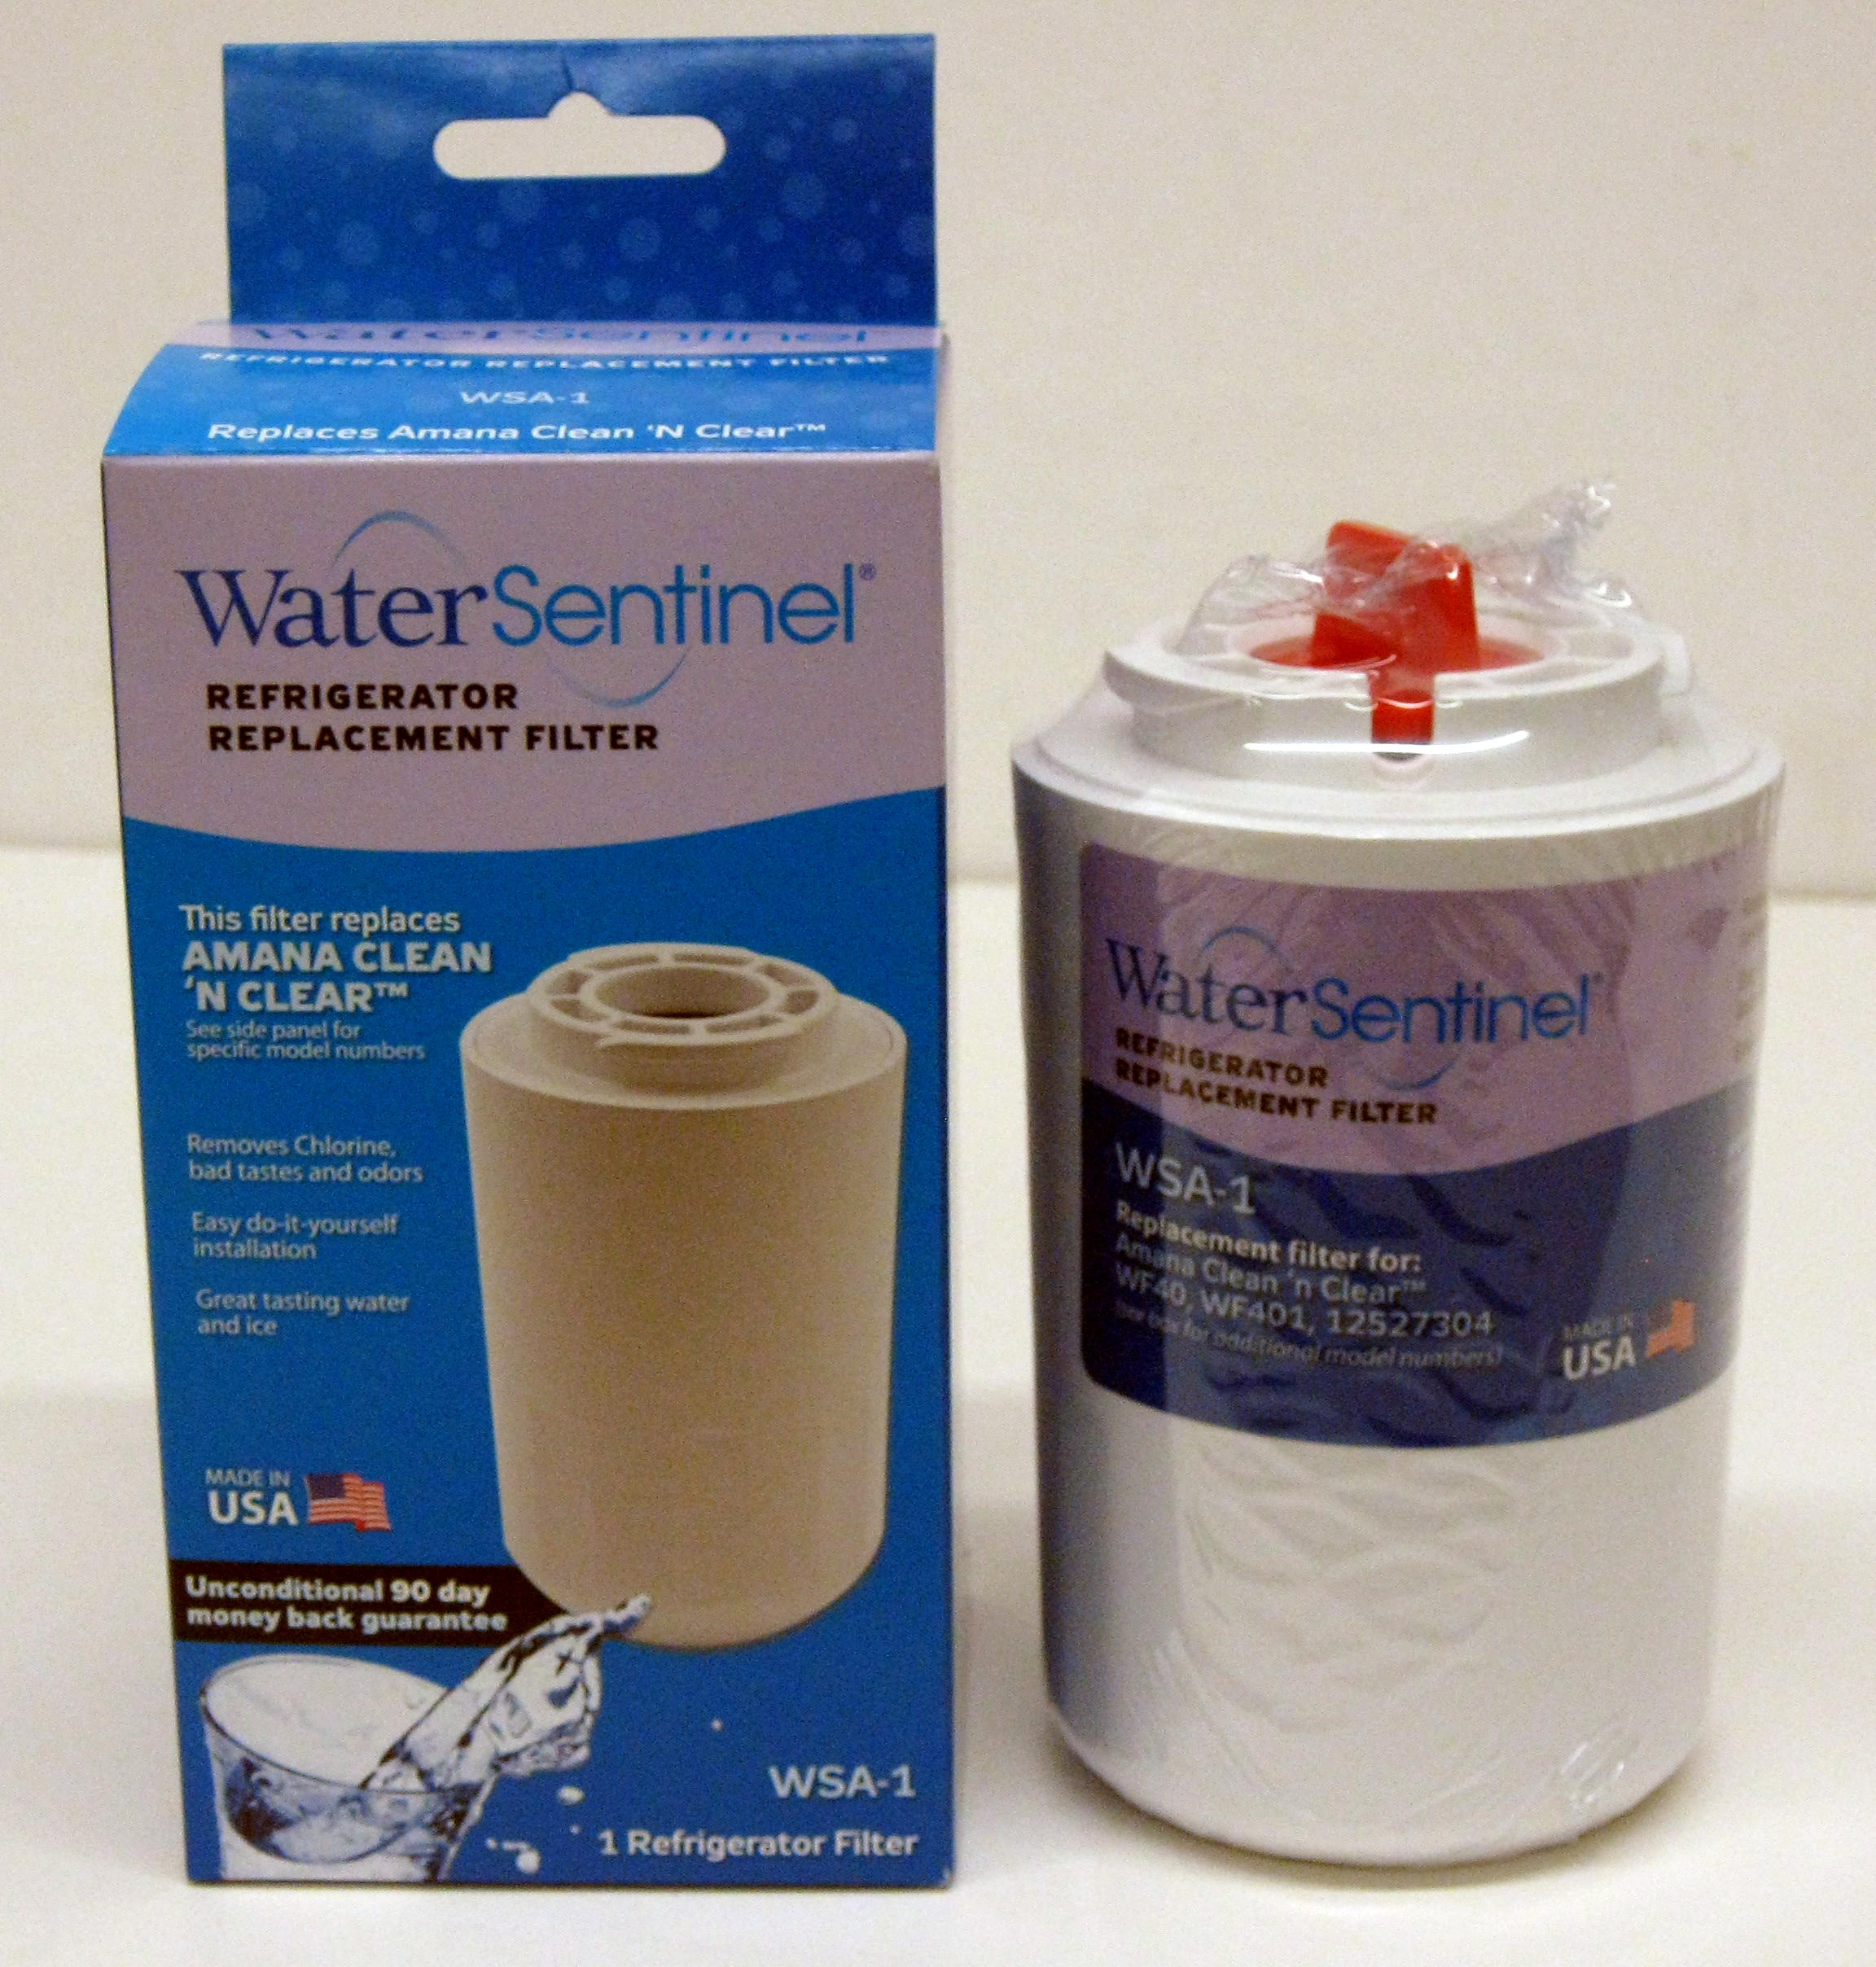 WSA1 Water Sentinel Refrigerator Water Filter for Amana Kenmore 46-9014 46-9904